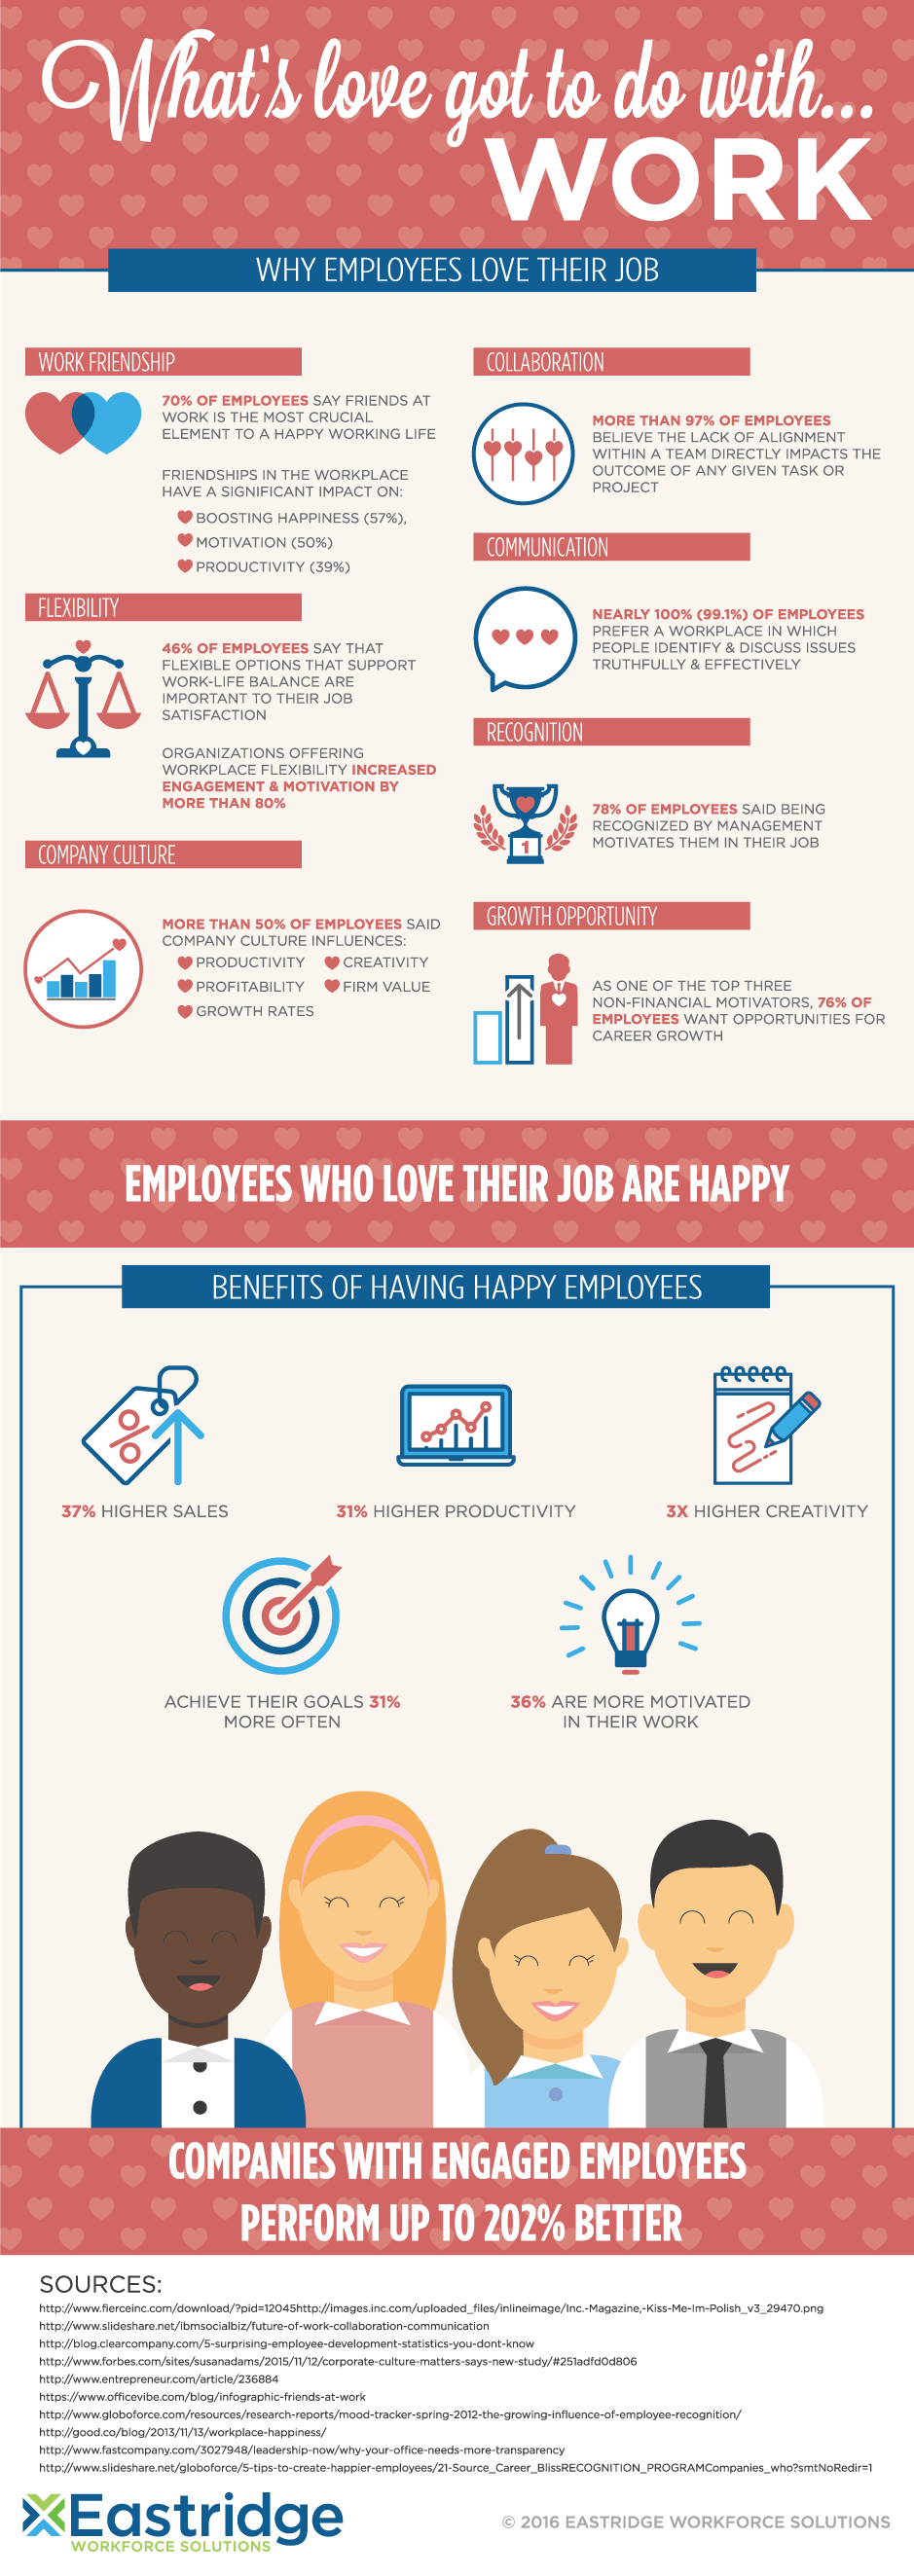 Love At Work Results In Workplace Happiness